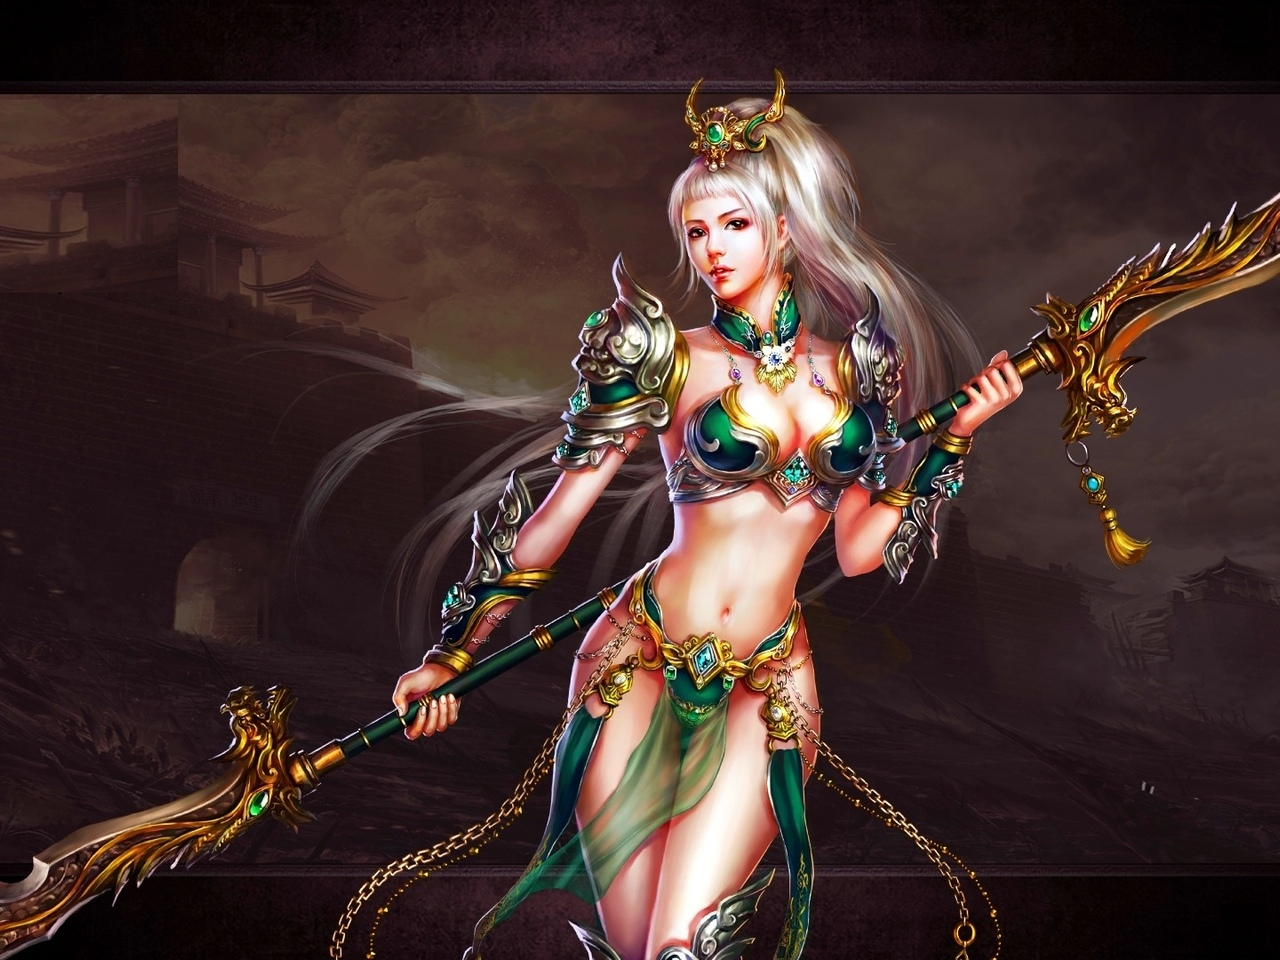 Dynasty warriors girls only nude rule naked scene